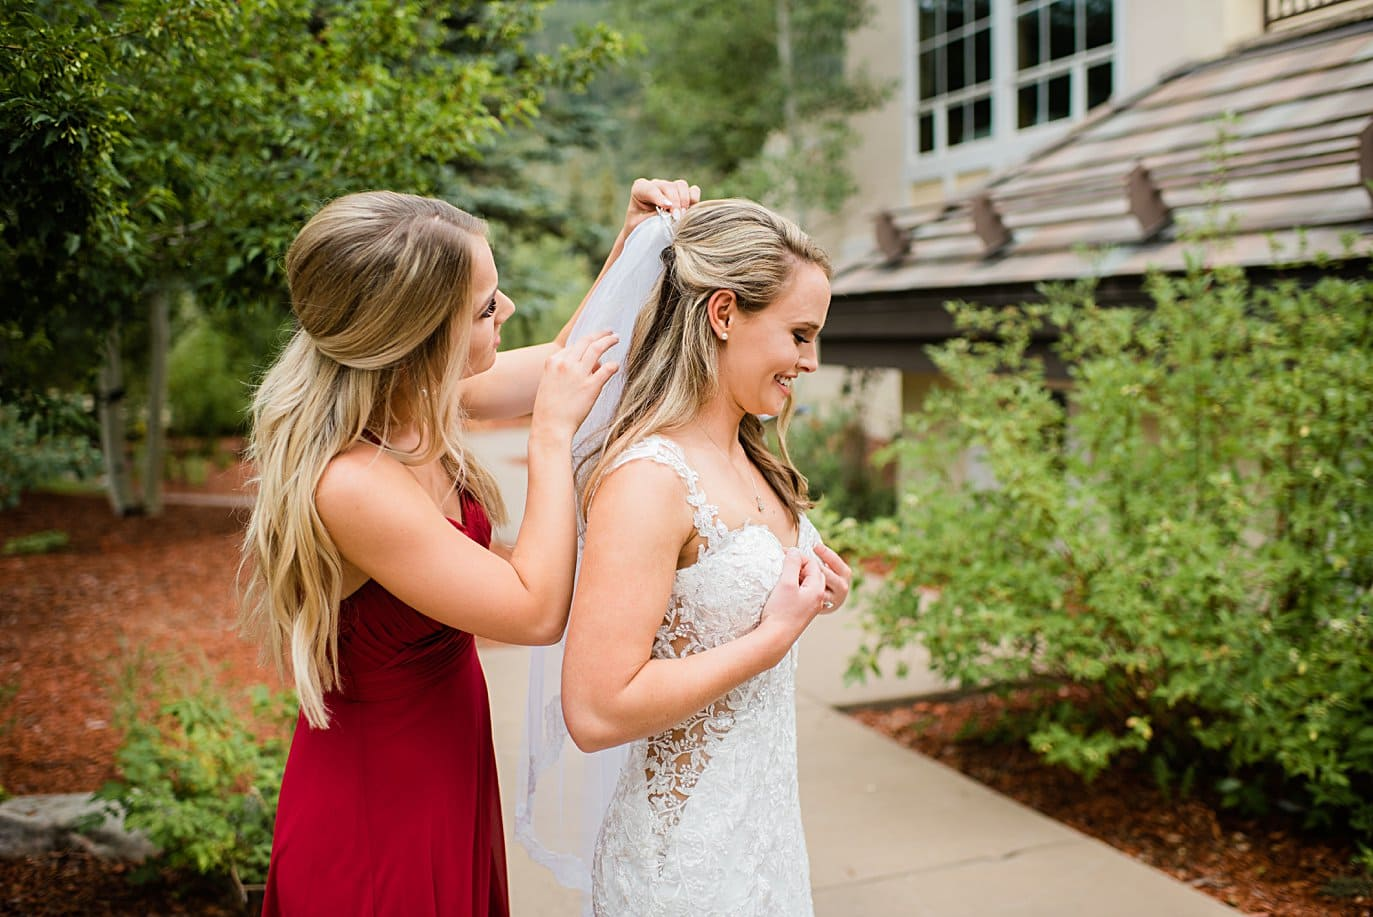 bridesmaid puts vail on bride at Larkspur Vail Wedding by Vail Wedding photographer Jennie Crate